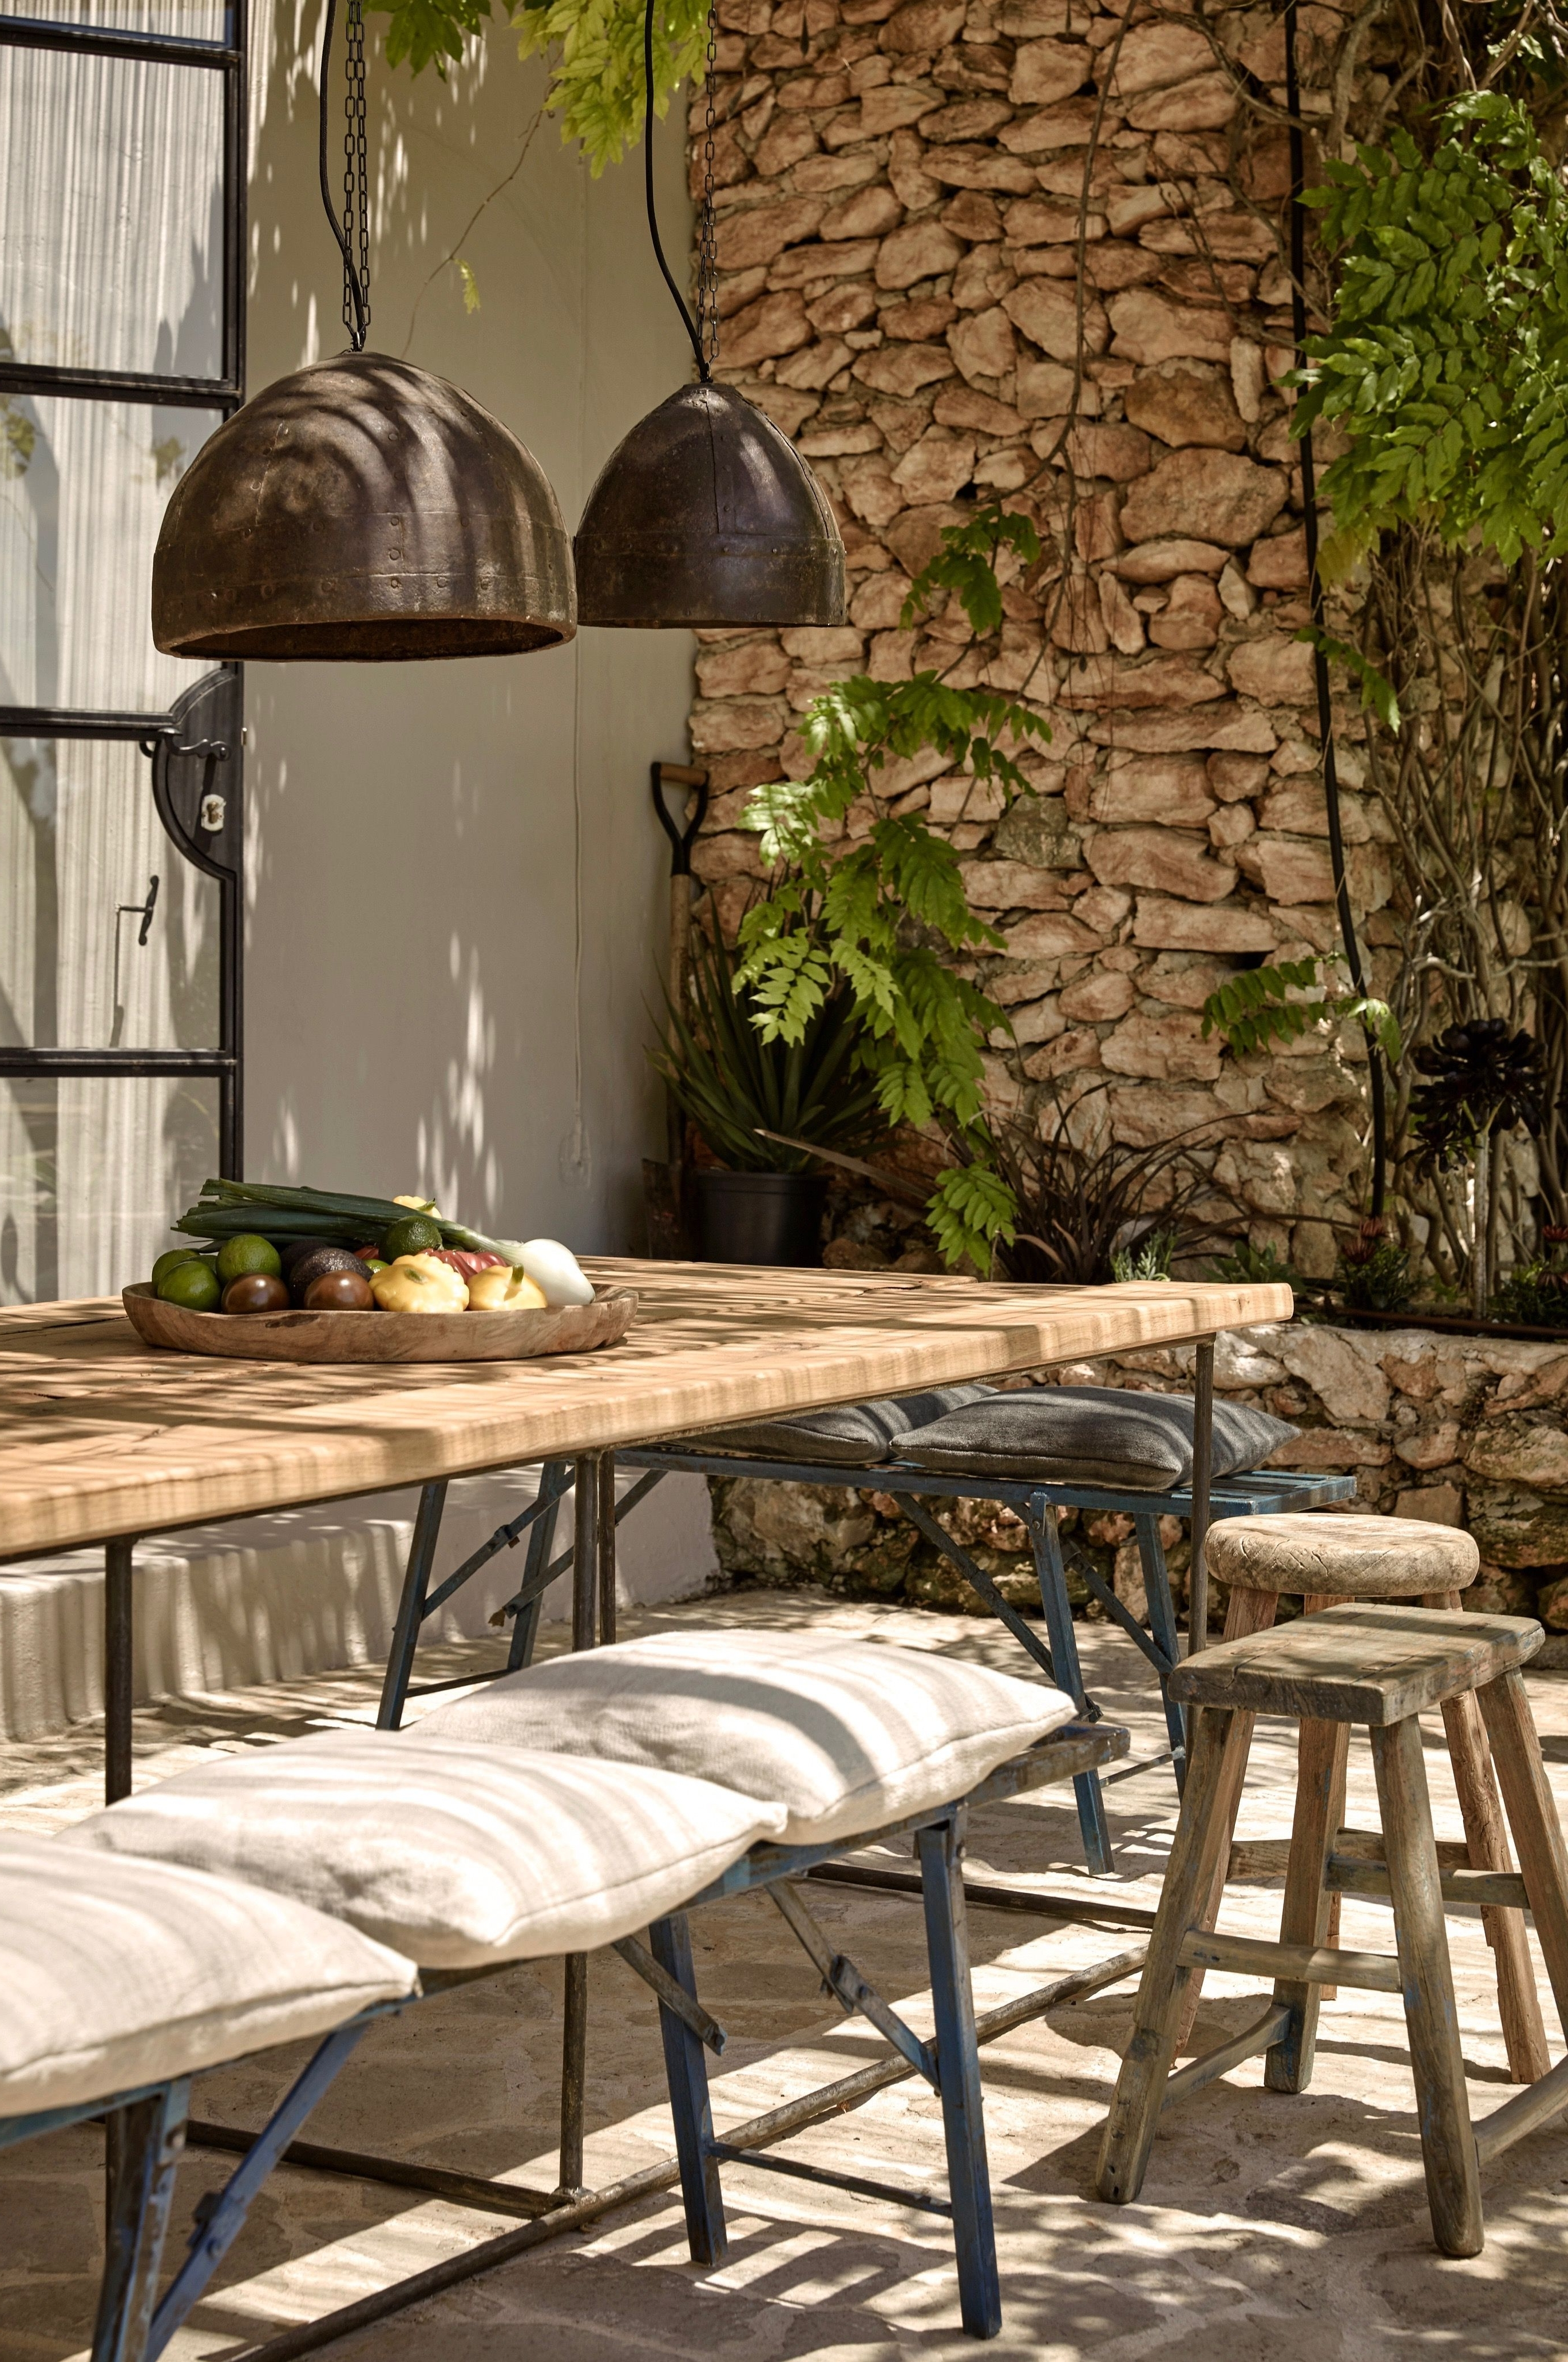 Well Known Outdoor Dining Lanterns With Regard To Hotel La Granja Ibiza Outdoor Dining Lanterns Stone Wall Gardenista (View 18 of 20)